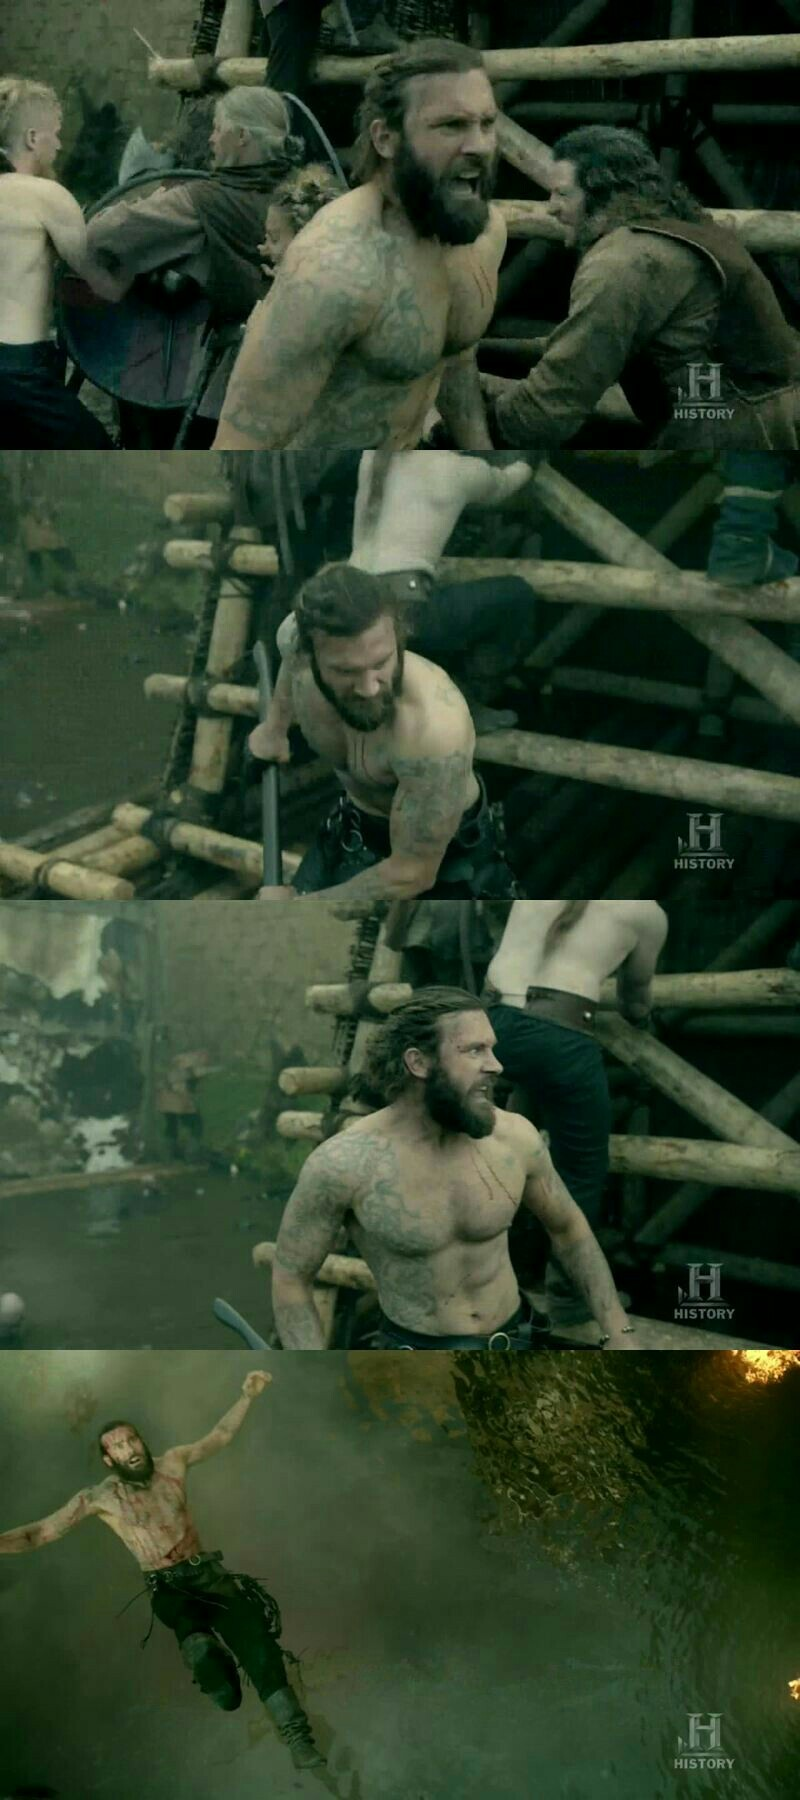 I wanna thank Rollo for fighting shirtless